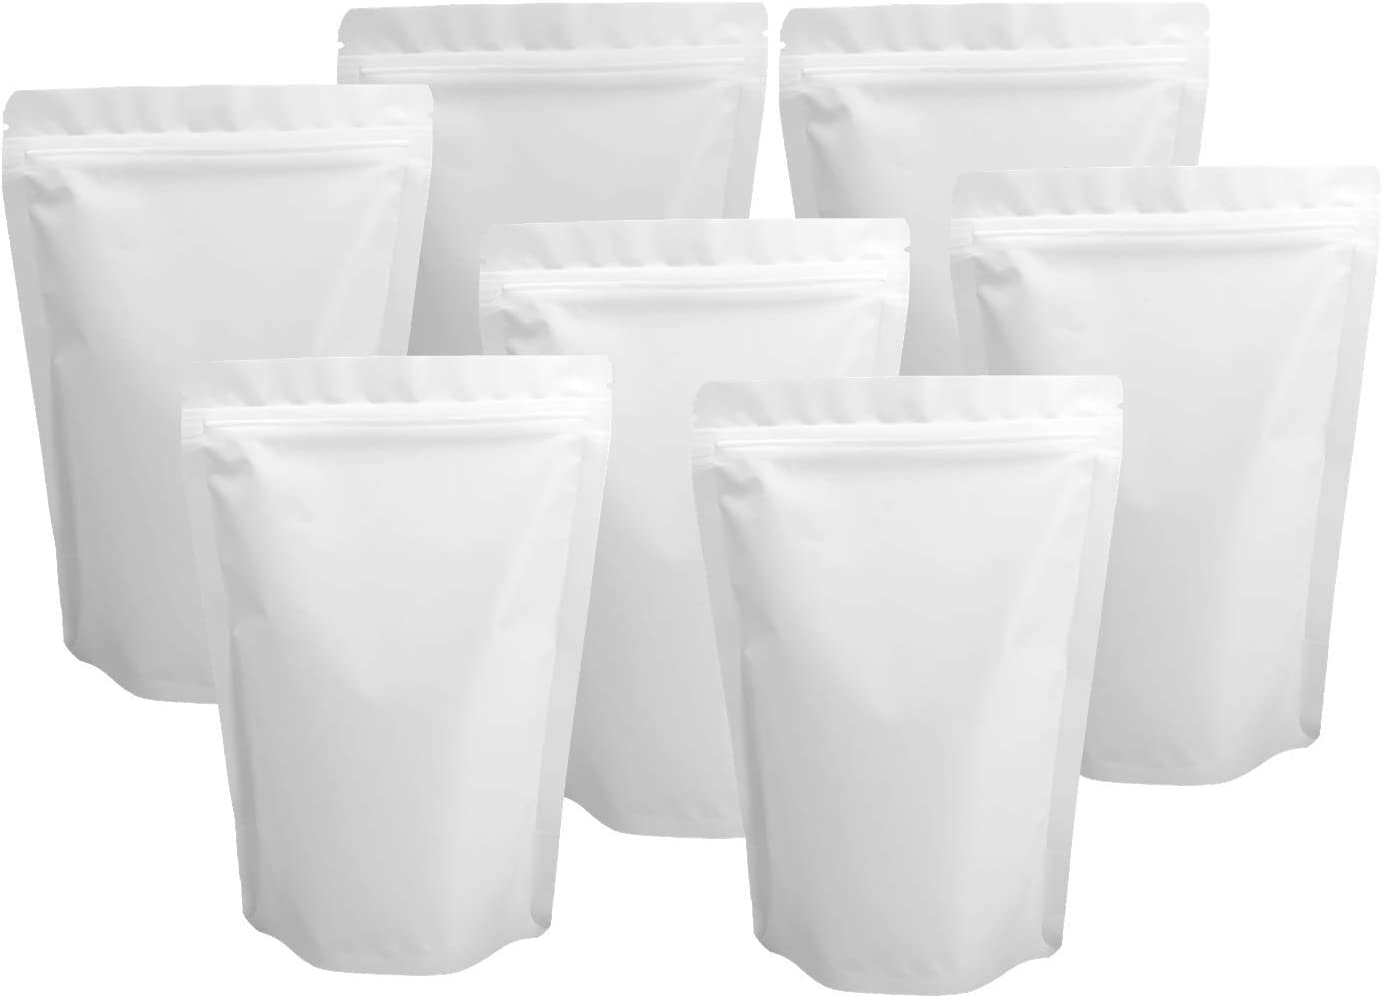 100 Pack Resealable White Mylar Stand Up Bags - 5.5x7.8 Inches Smell Proof Ziplock Pouches, Heat Sealable Foil Packaging Bags for Food Storage - Matte White